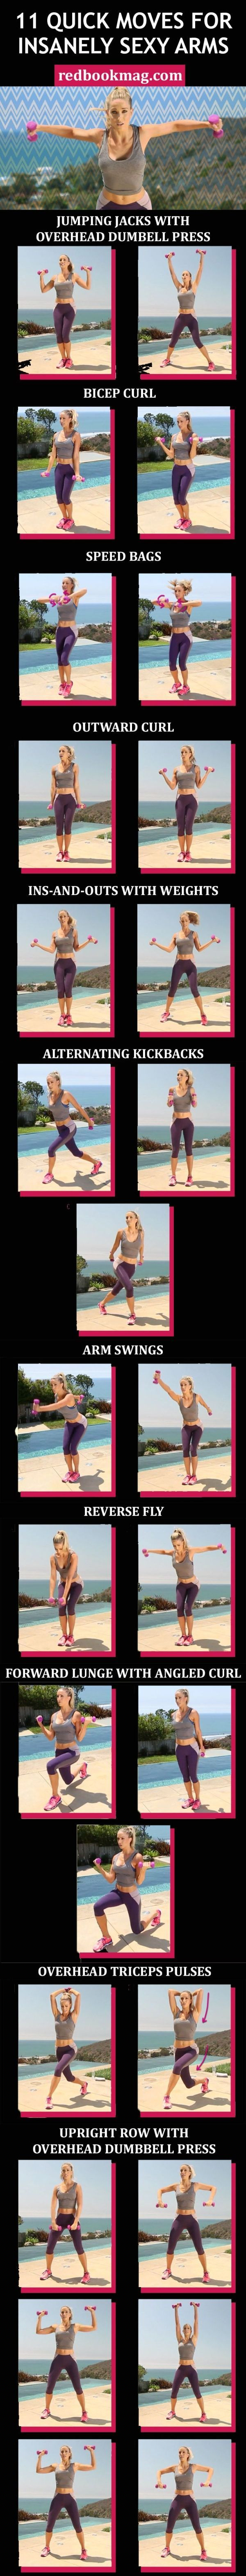 How to Build Muscle: Be Successful At Weight Loss With These Simple Tip...